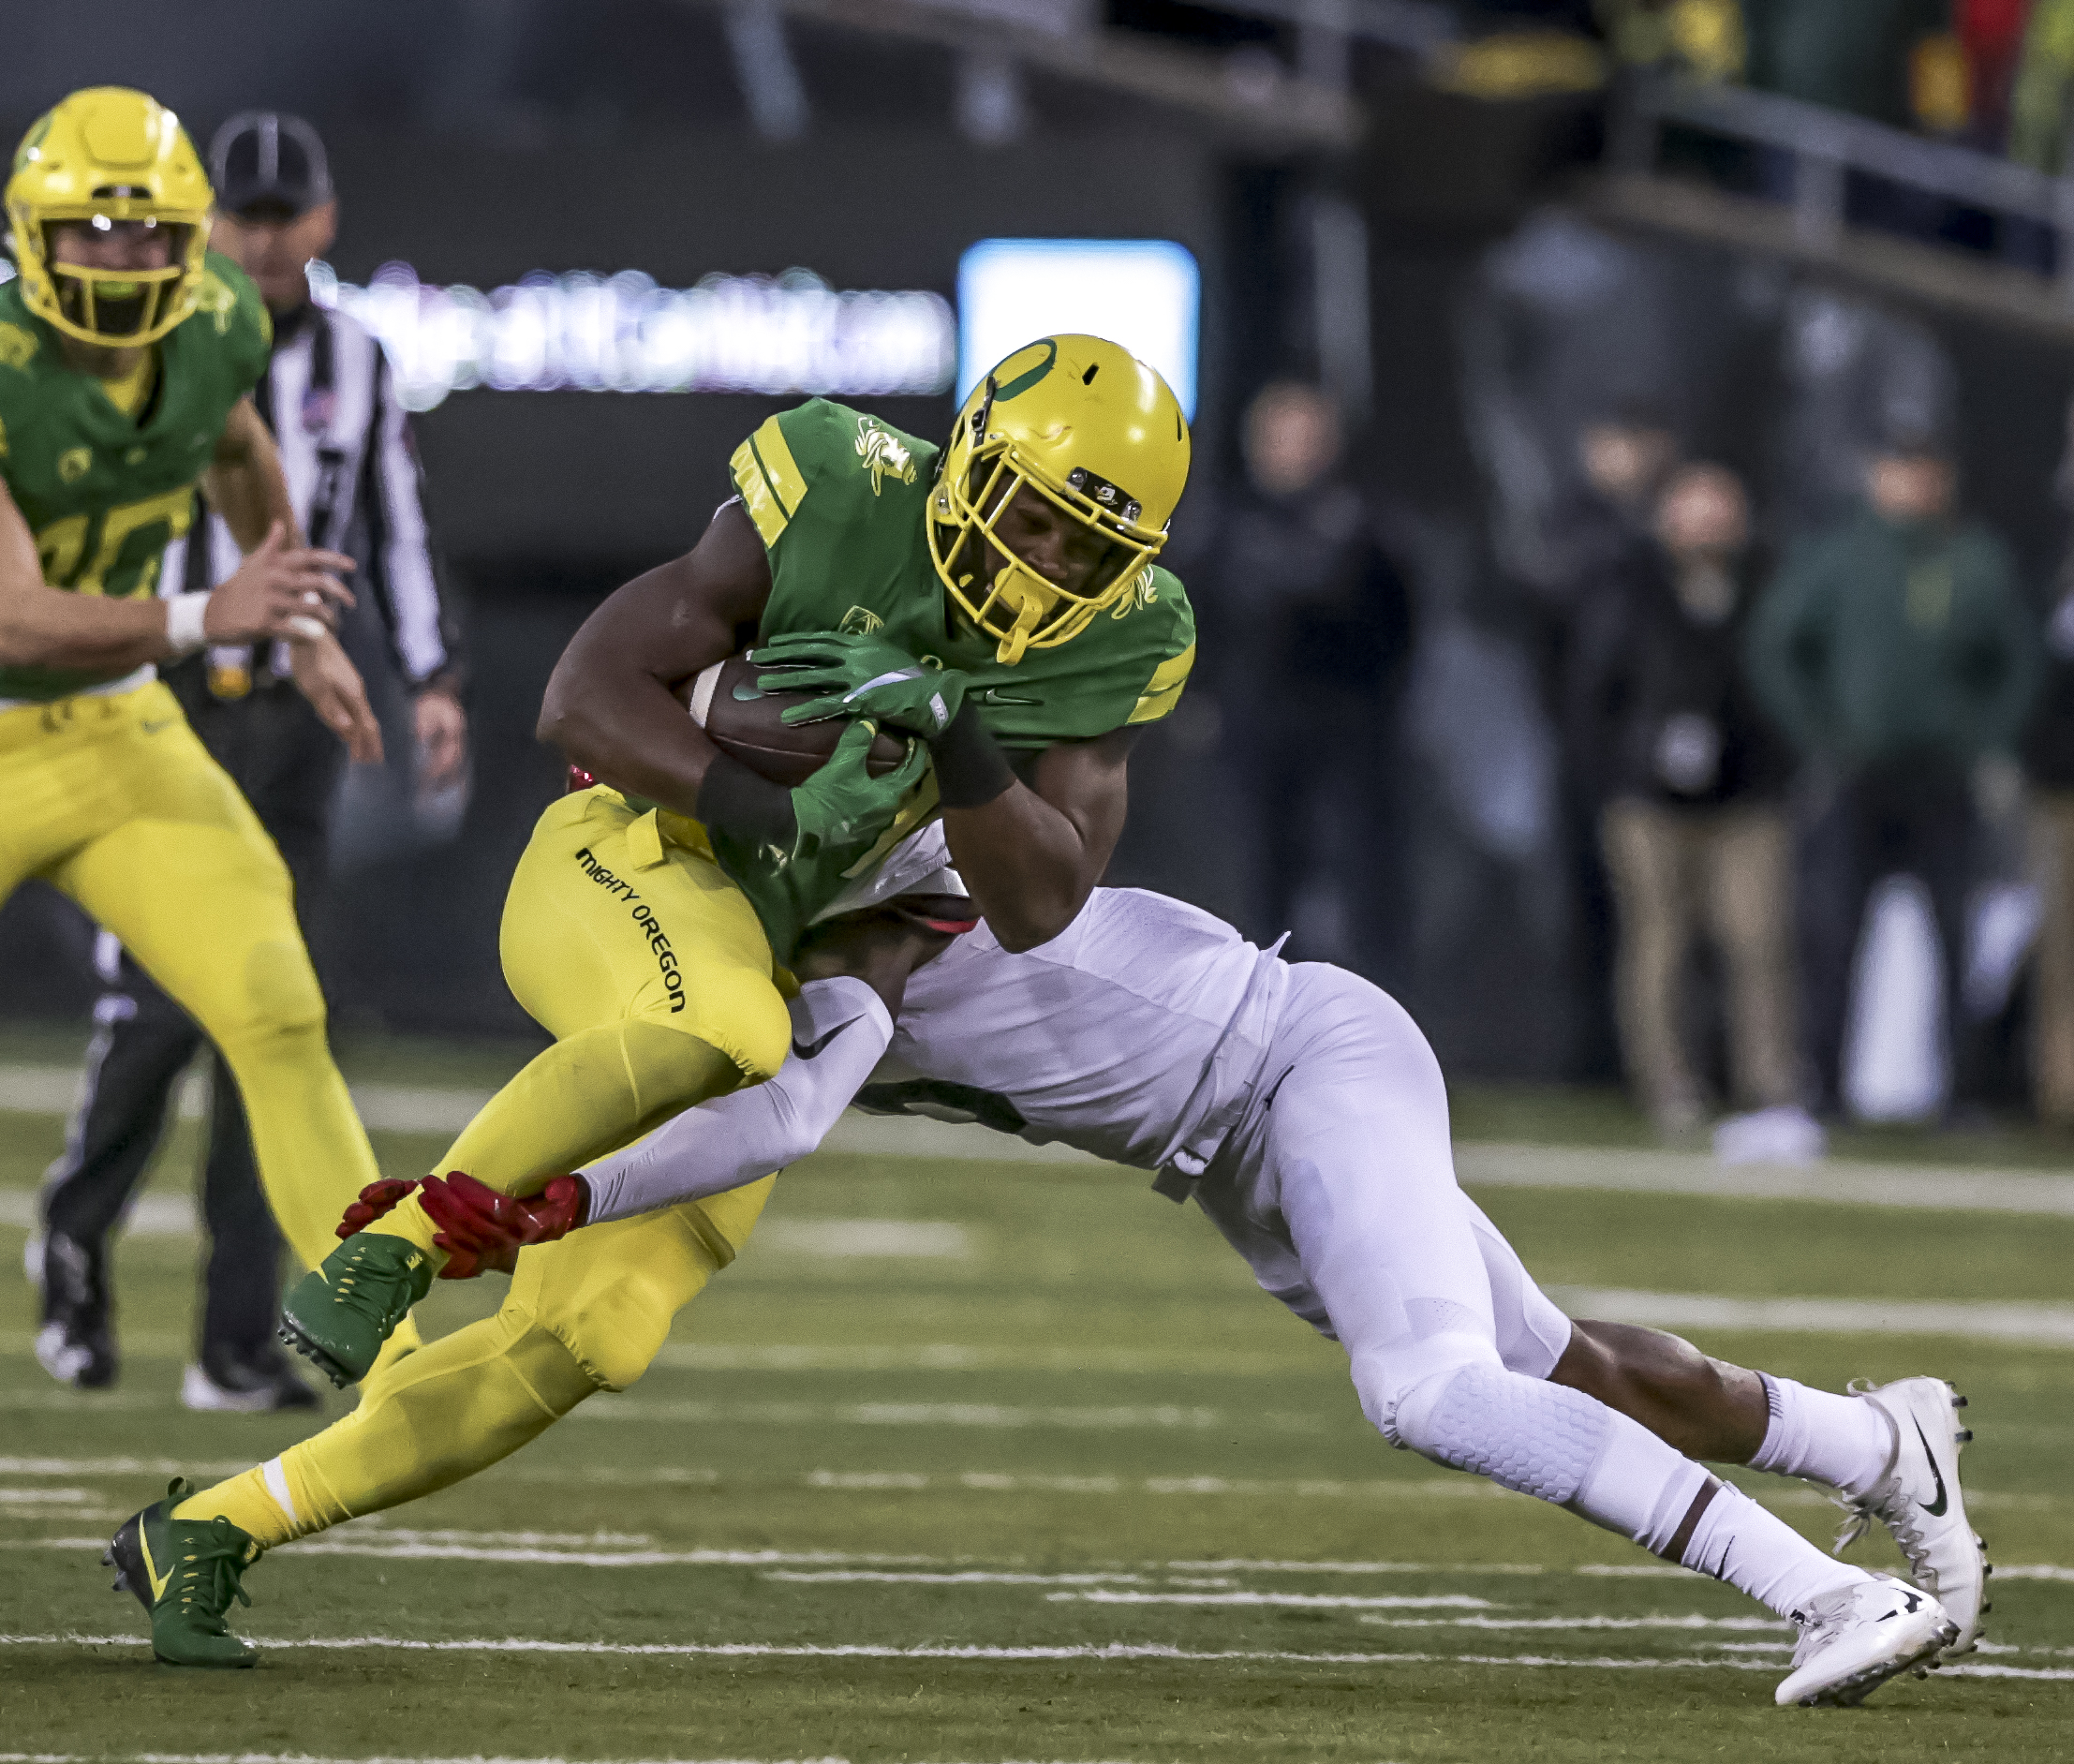 Oregon running back Royce Freeman (#21) charges past an Arizona defender. The Oregon Ducks lead the Arizona Wildcats 28 to 21 at the end of the first half at Autzen Stadium on Saturday, November 18, 2017. Photo by Ben Lonergan, Oregon News Lab